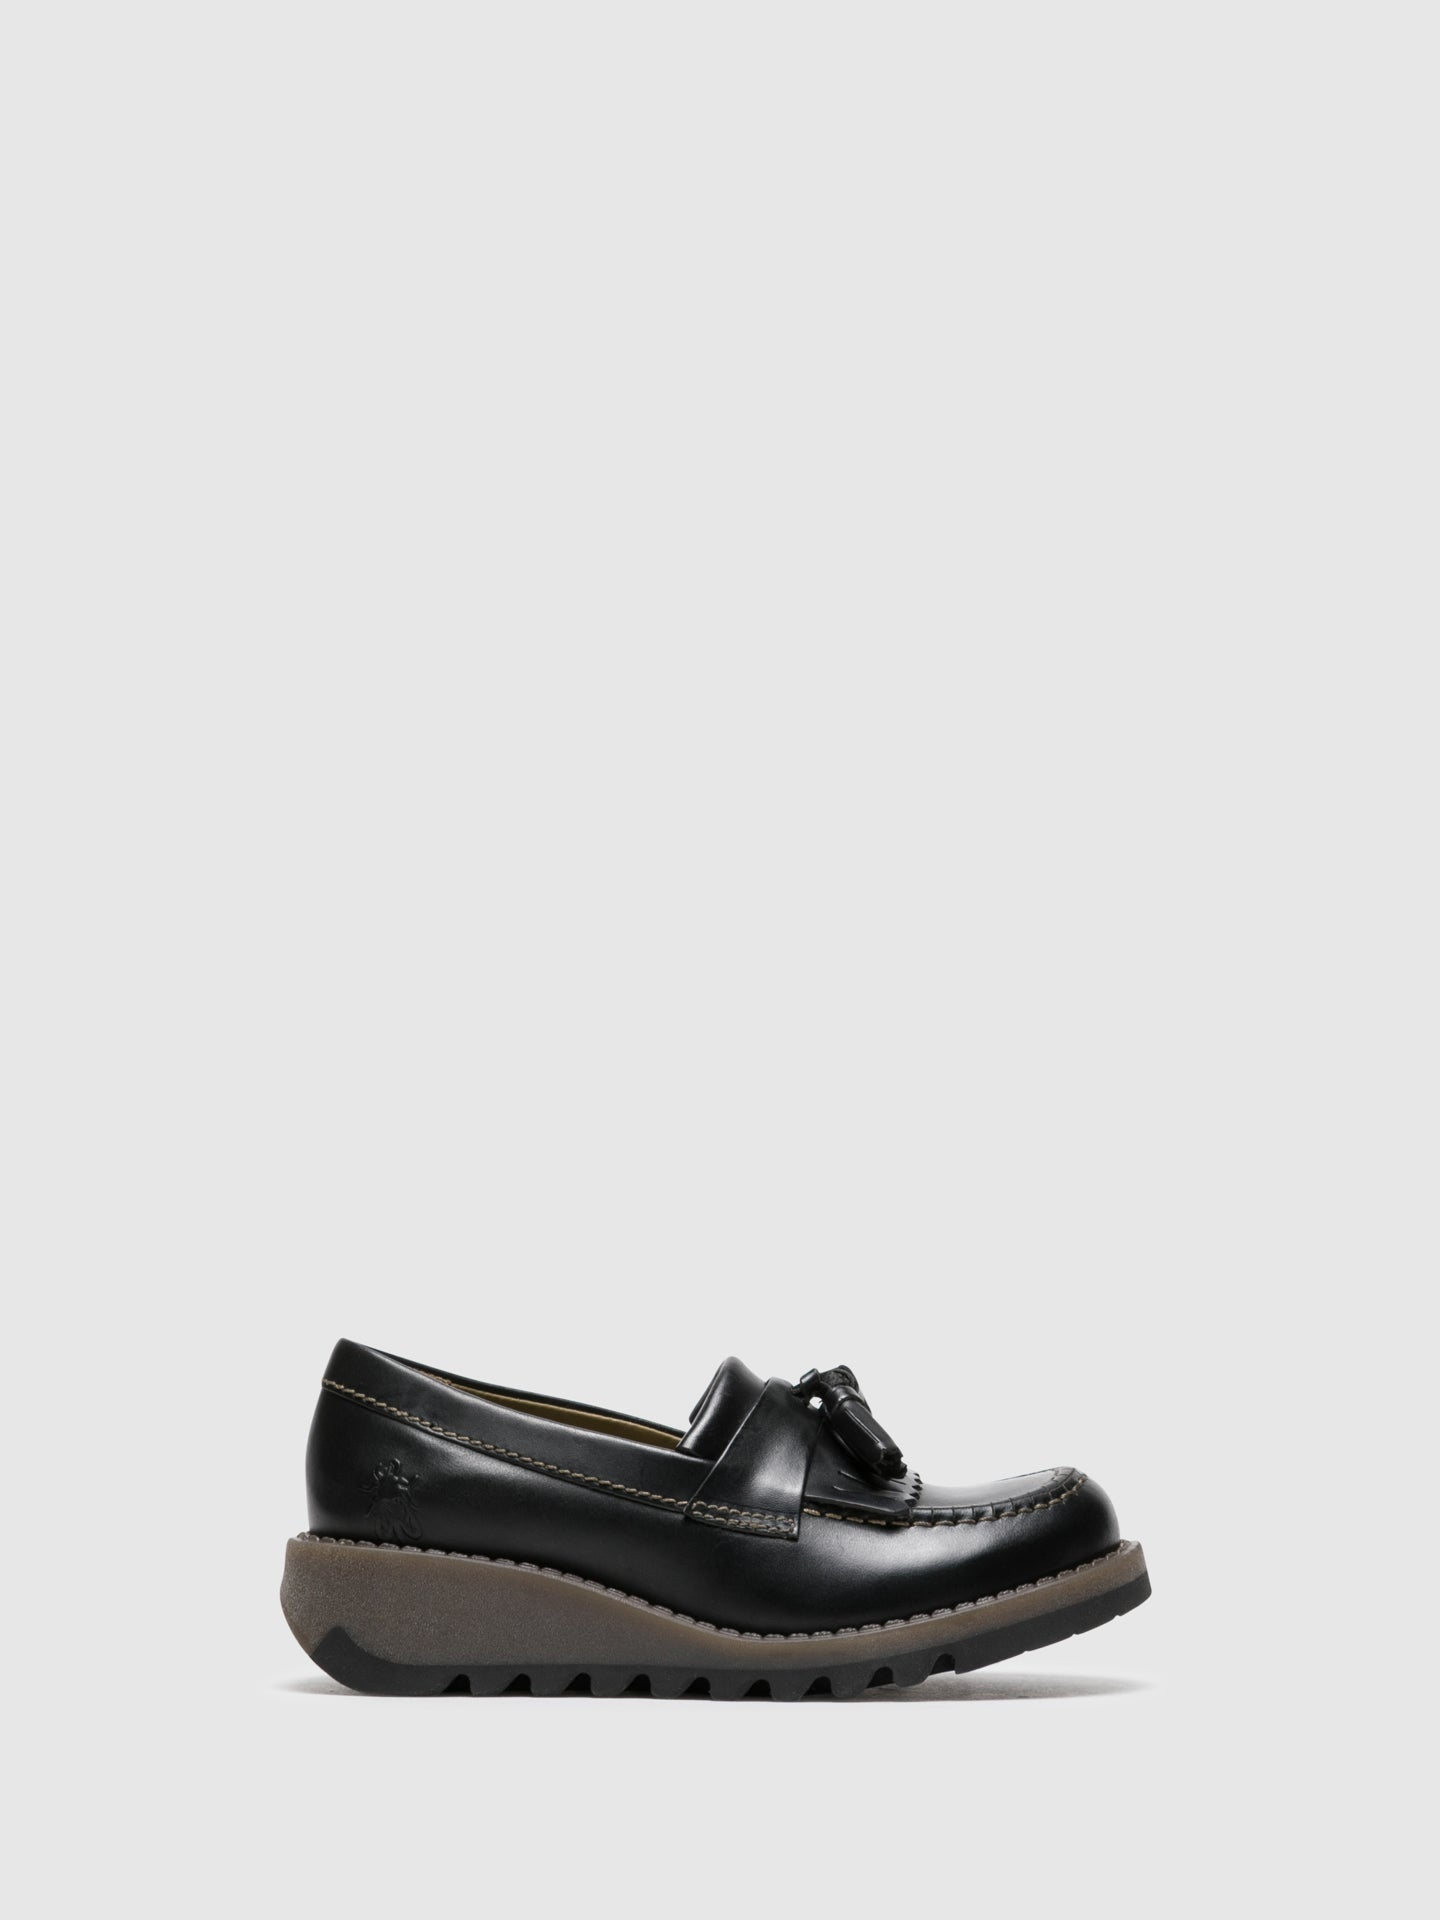 Fly London Zapatos Loafers en color Negro Grafito